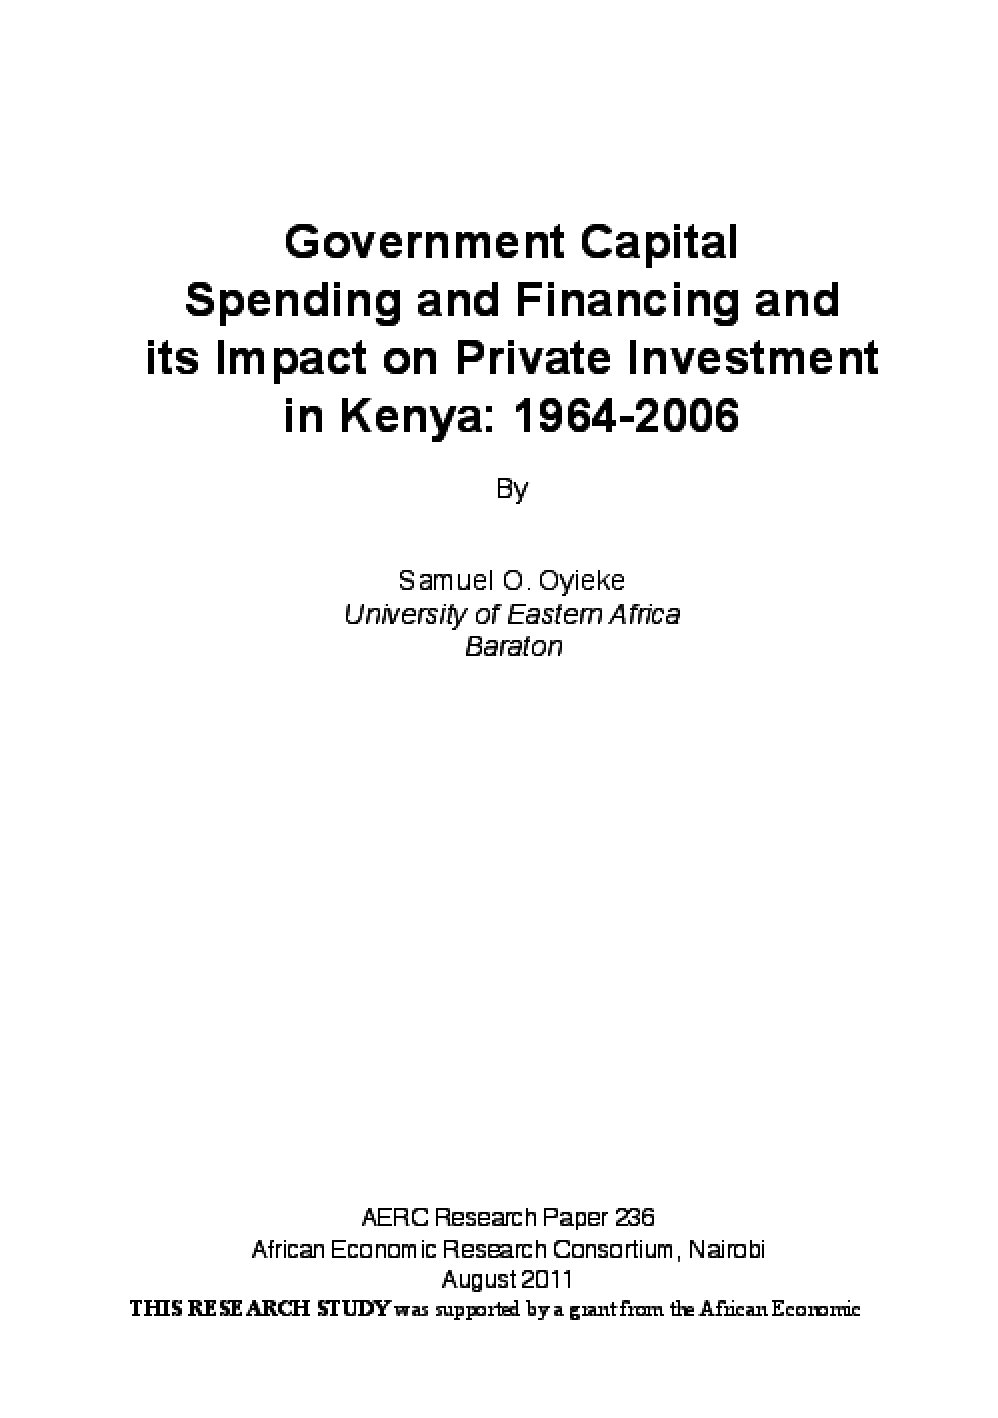 Government Capital Spending and Financing and its Impact on Private Investment in Kenya: 1964-2006